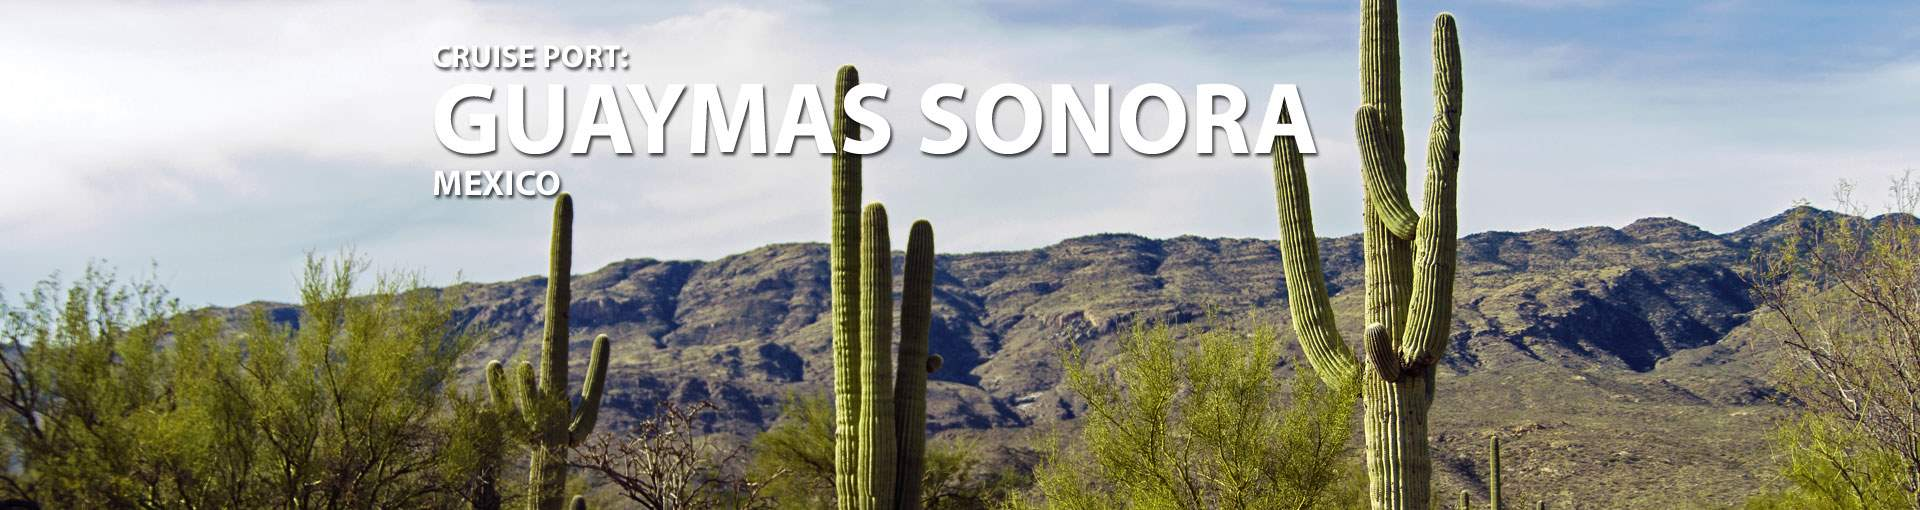 Cruises to Guaymas Sonora Mexico